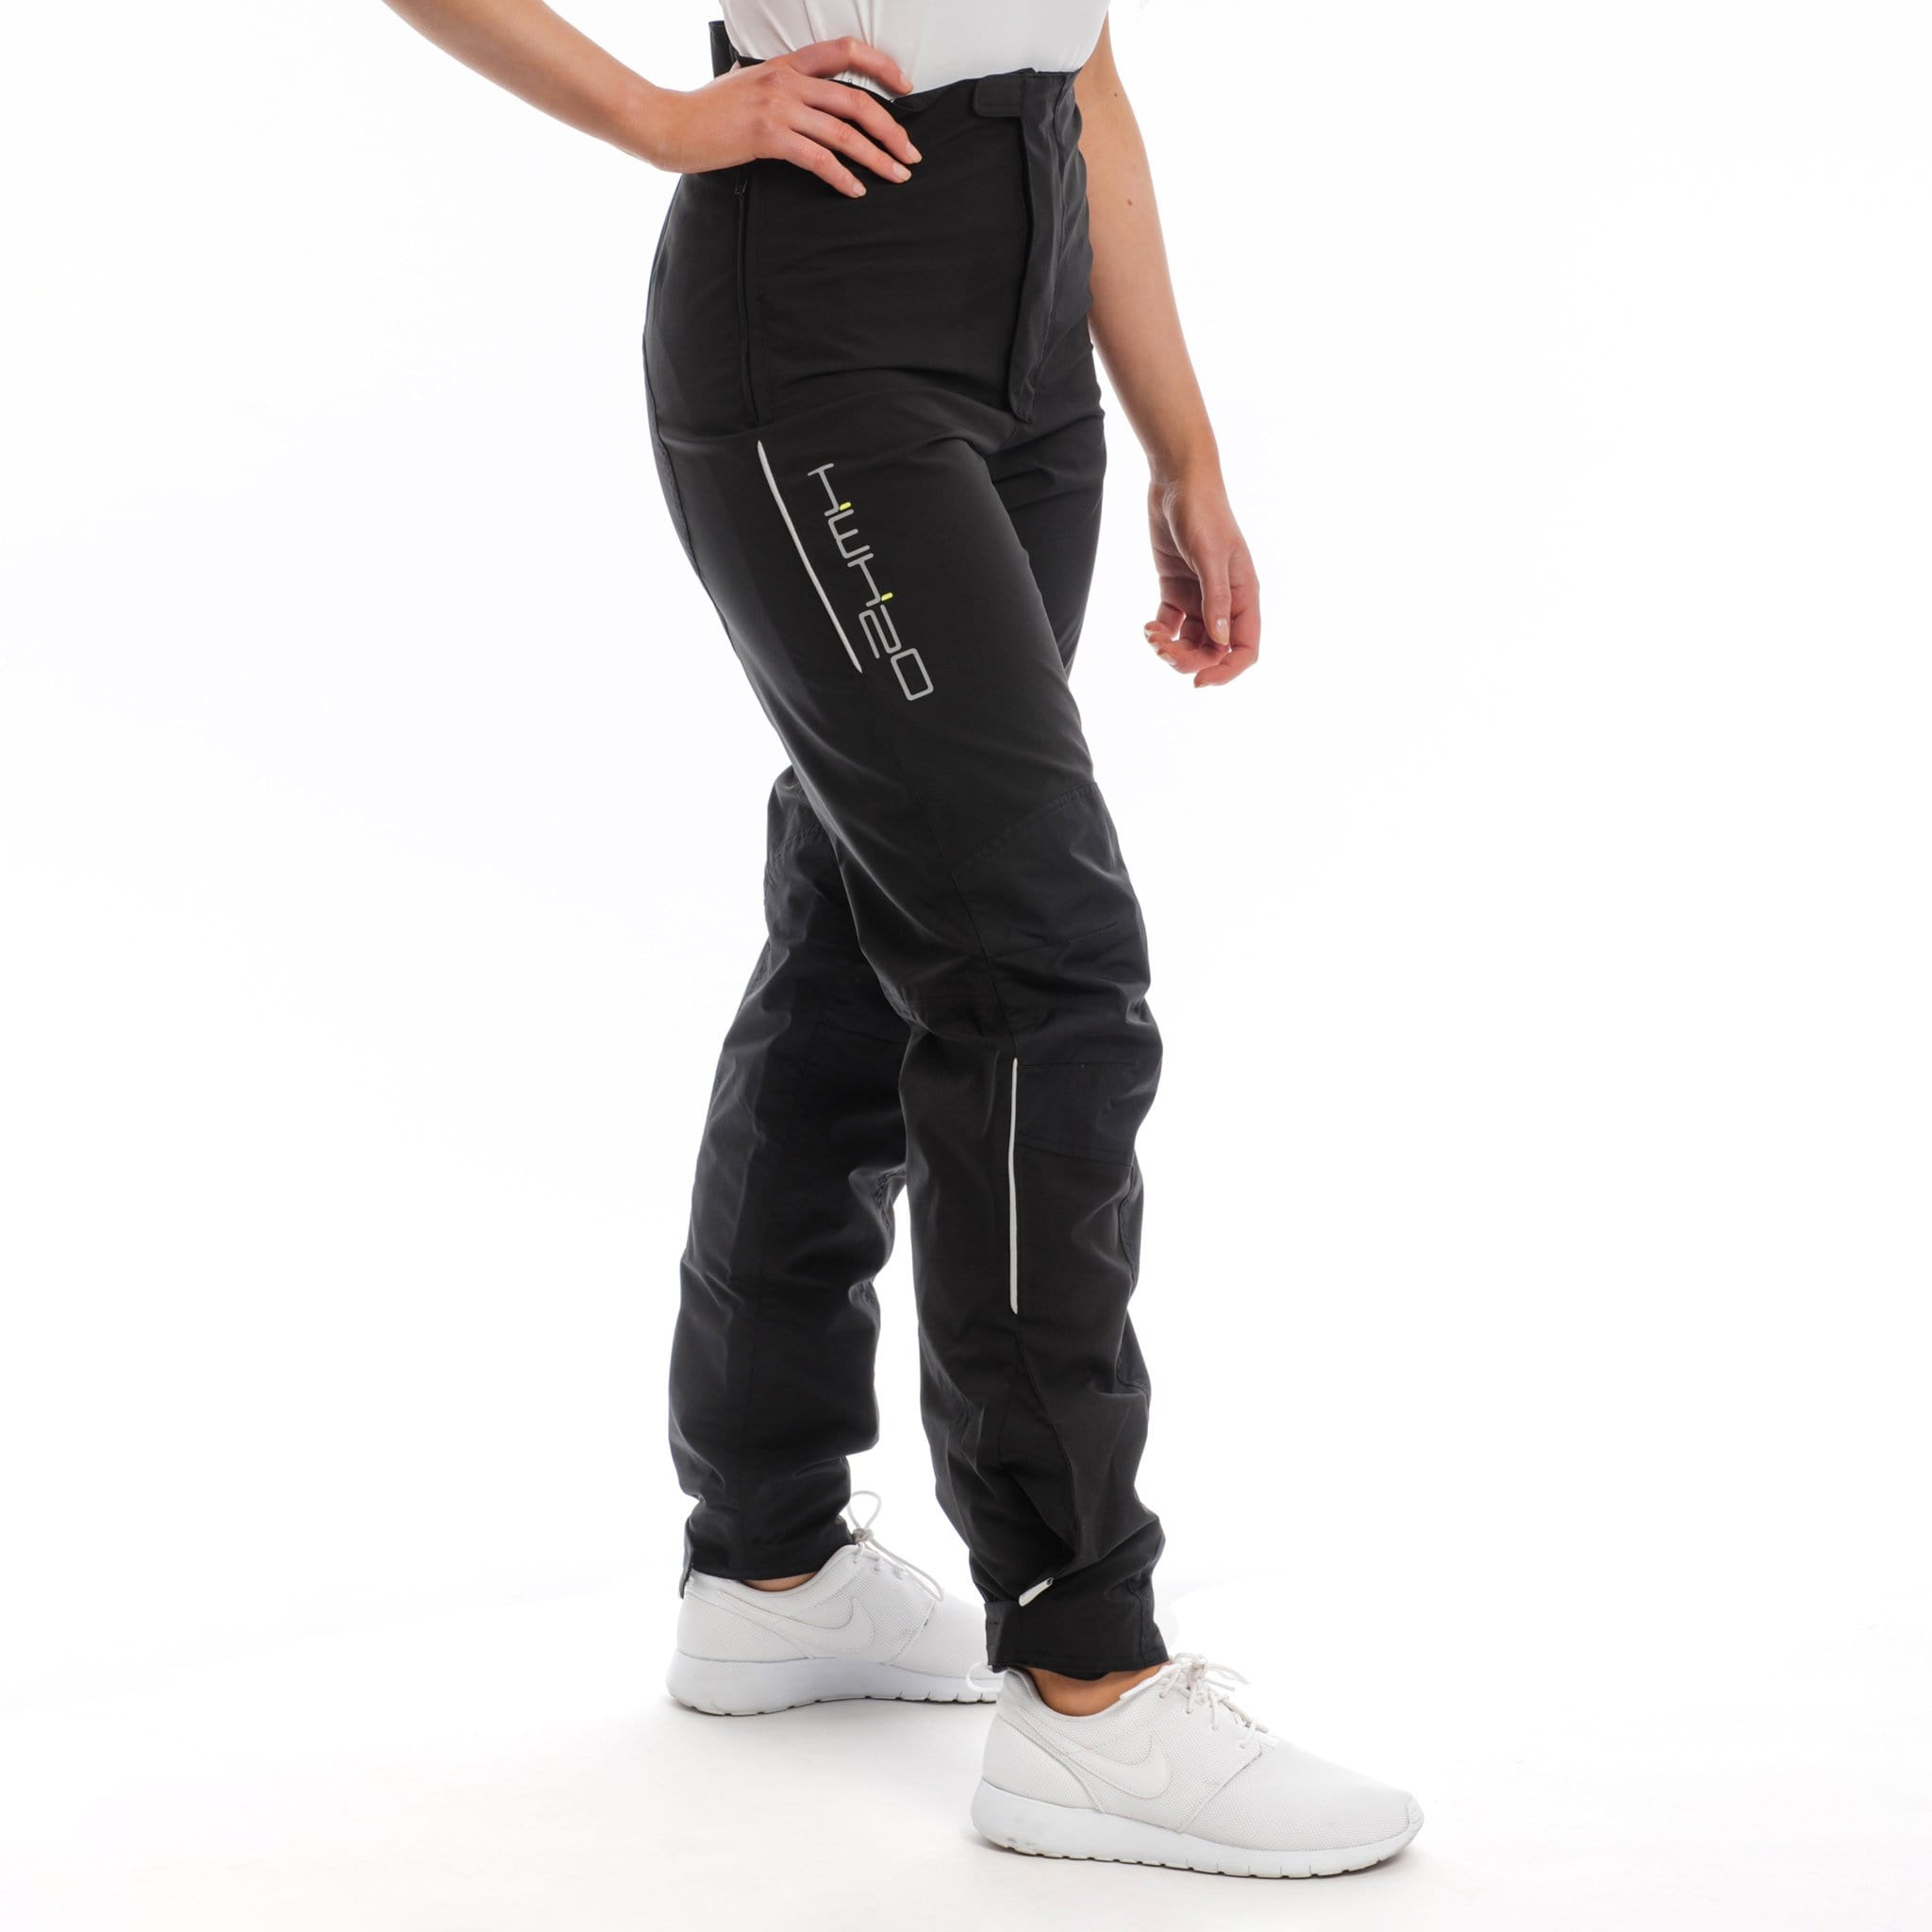 Horseware HWH2O Unisex Waterproof Trousers CLHTHI Black On Female Model Side View